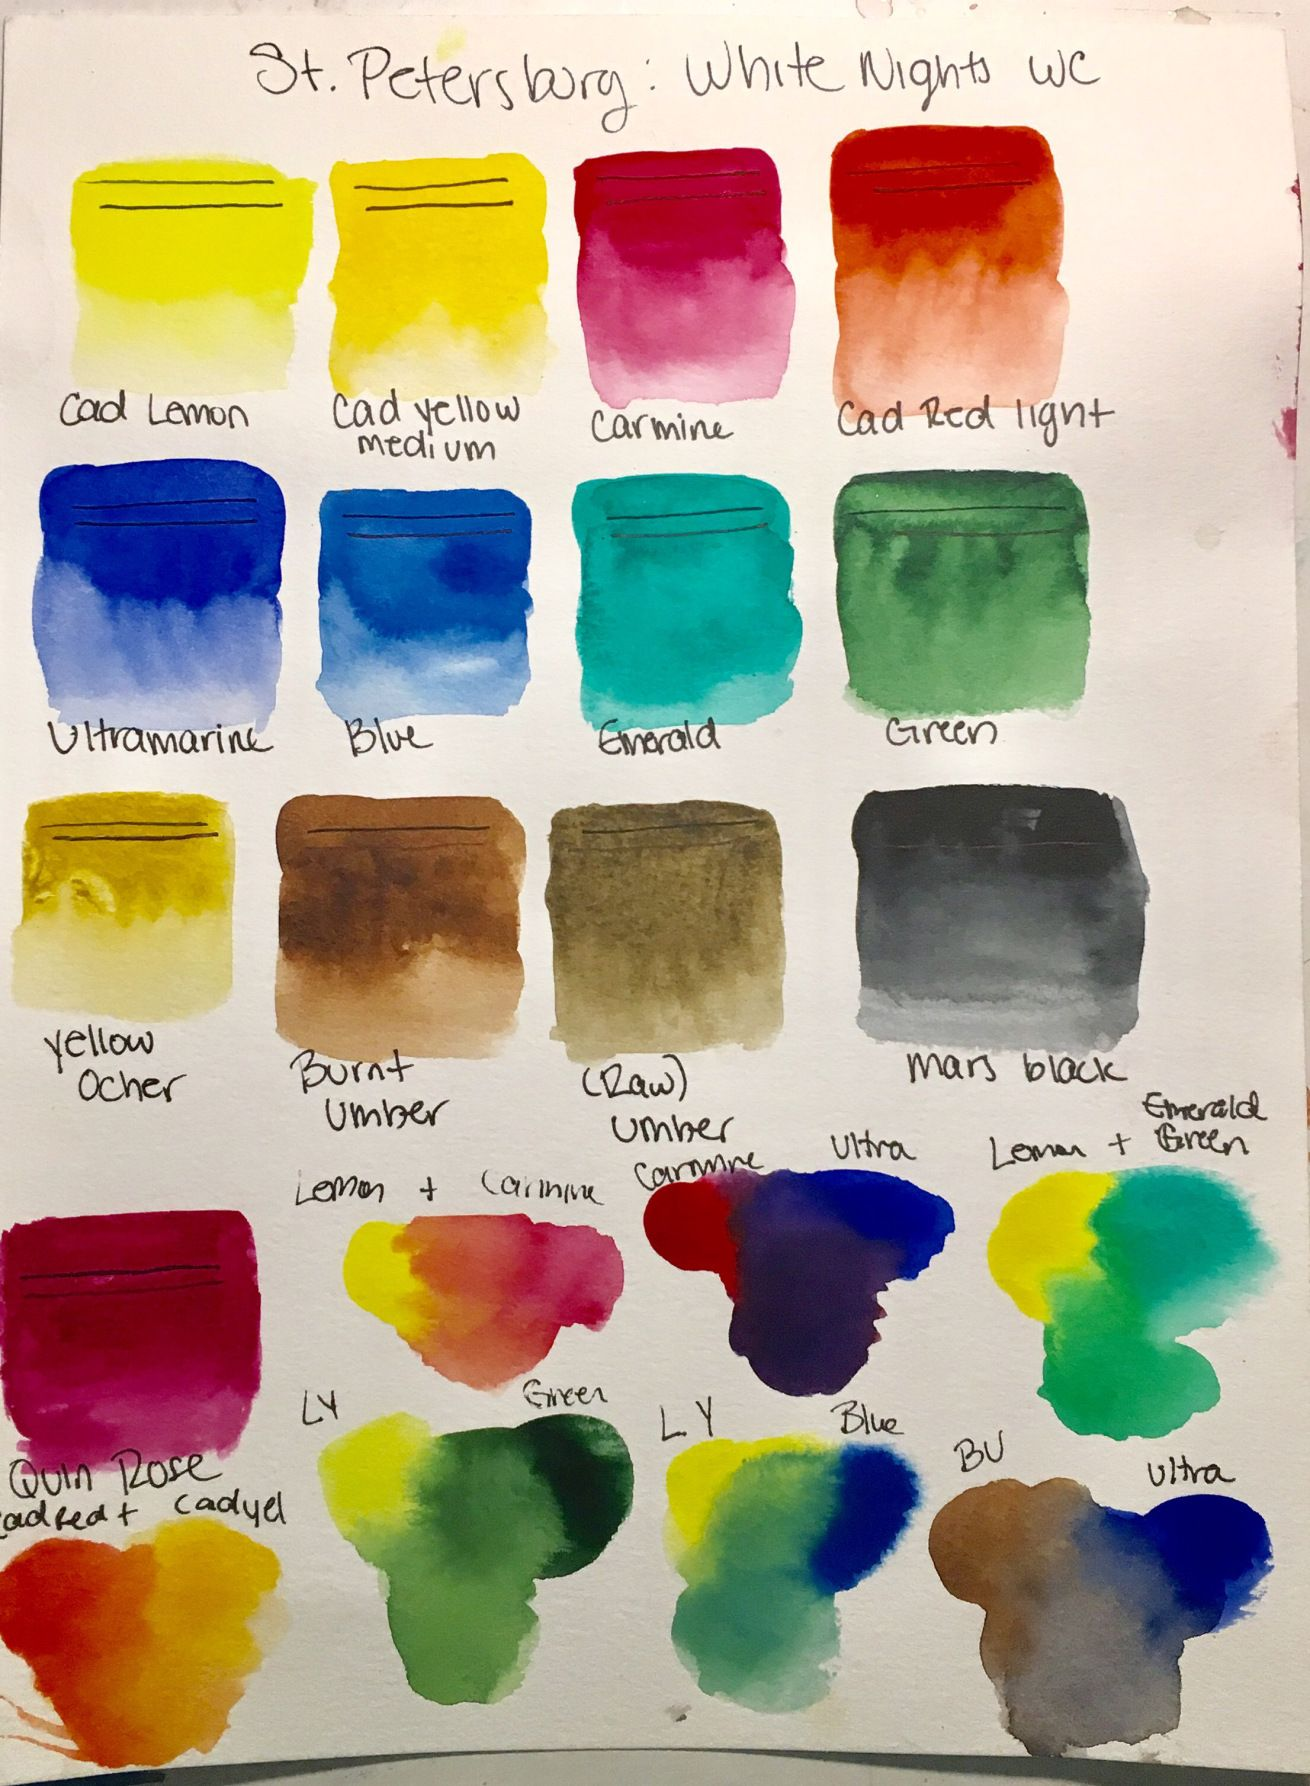 Paint Review St Petersburg White Nights Watercolors